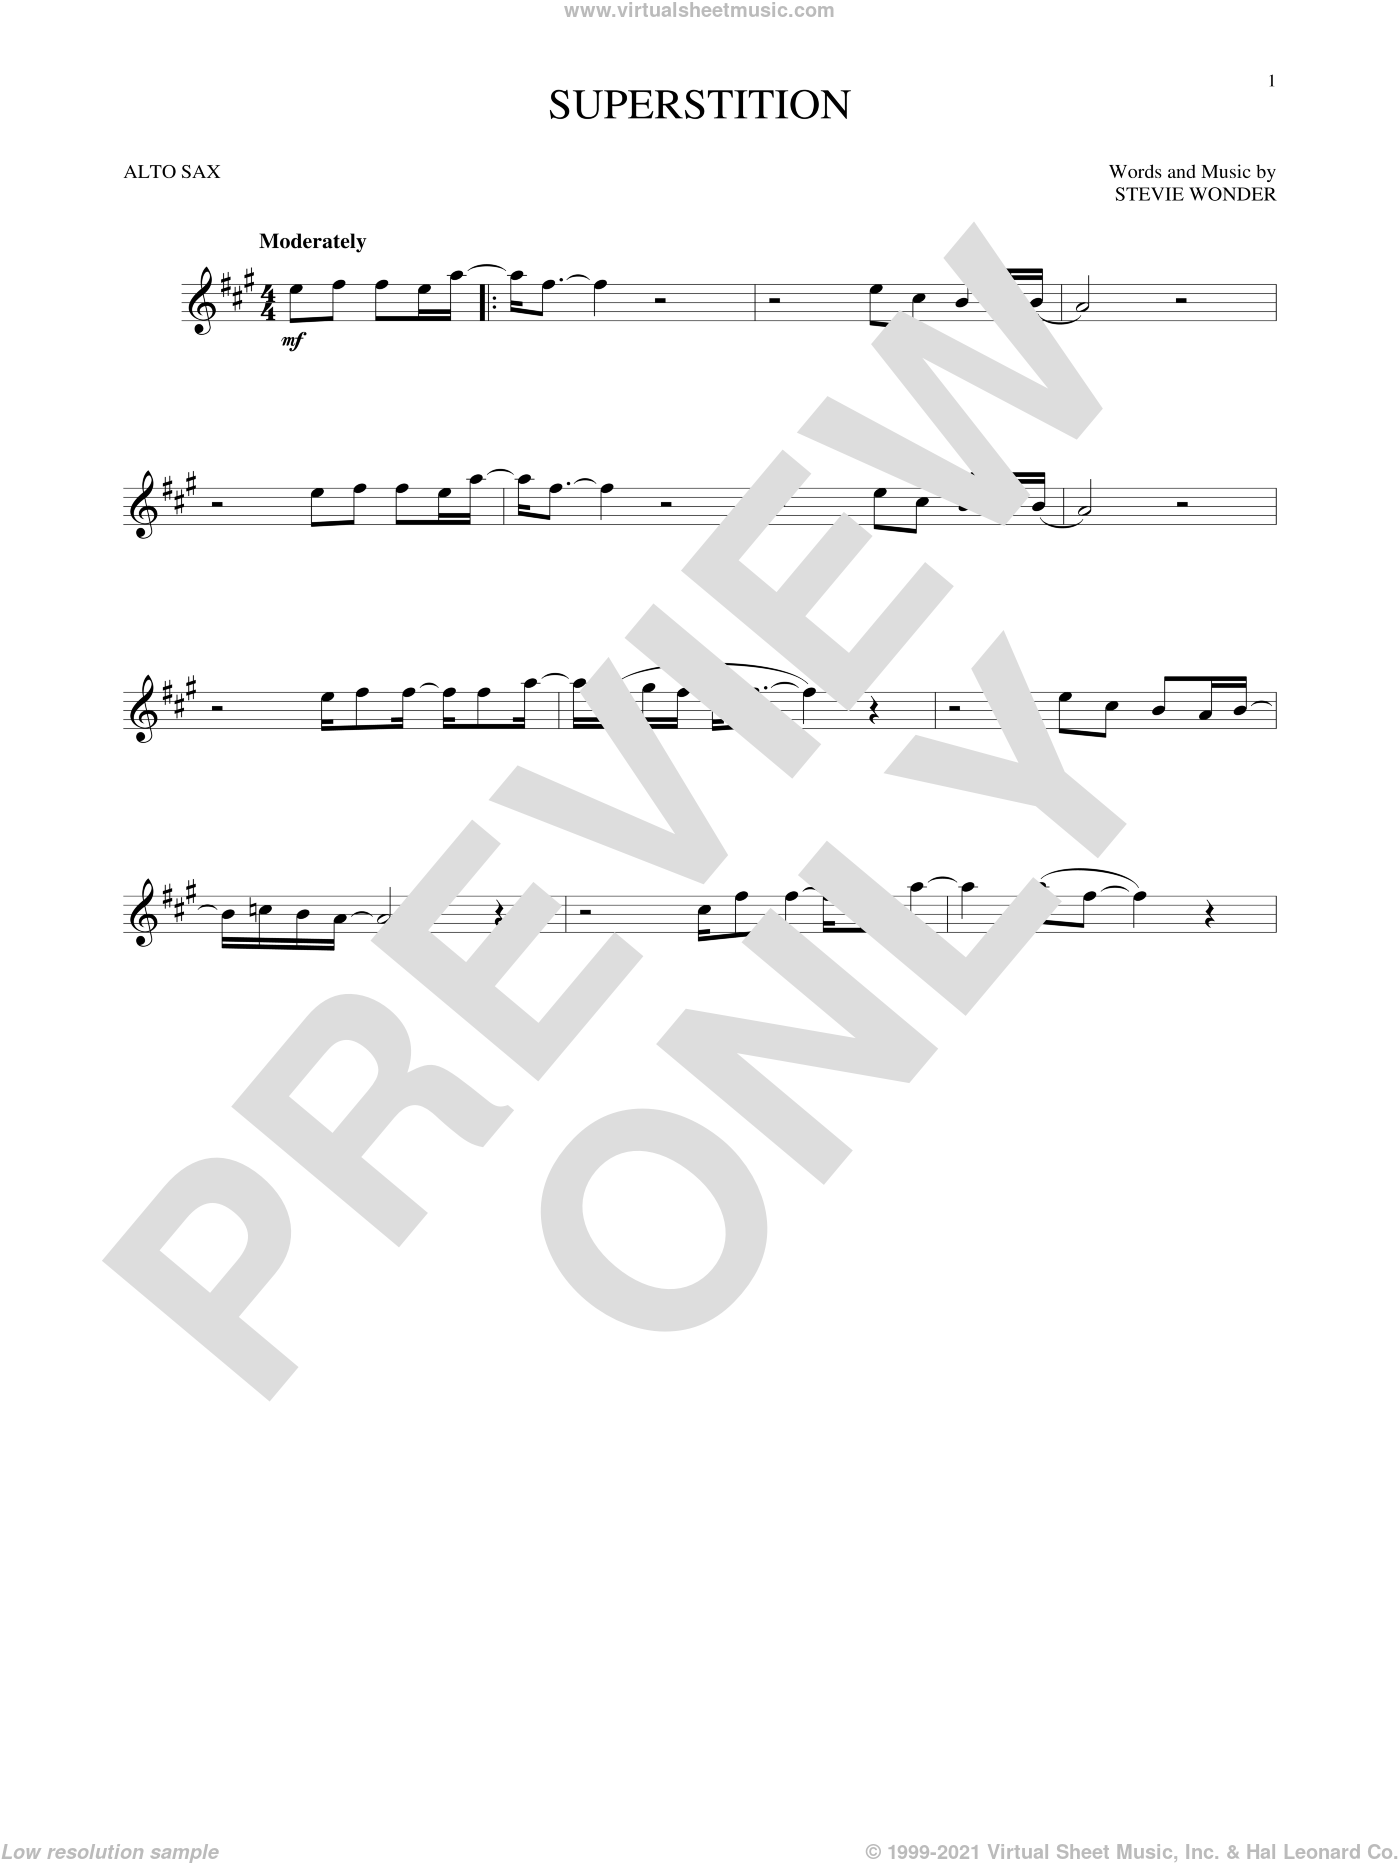 Superstition sheet music for alto saxophone solo by Stevie Wonder, intermediate skill level